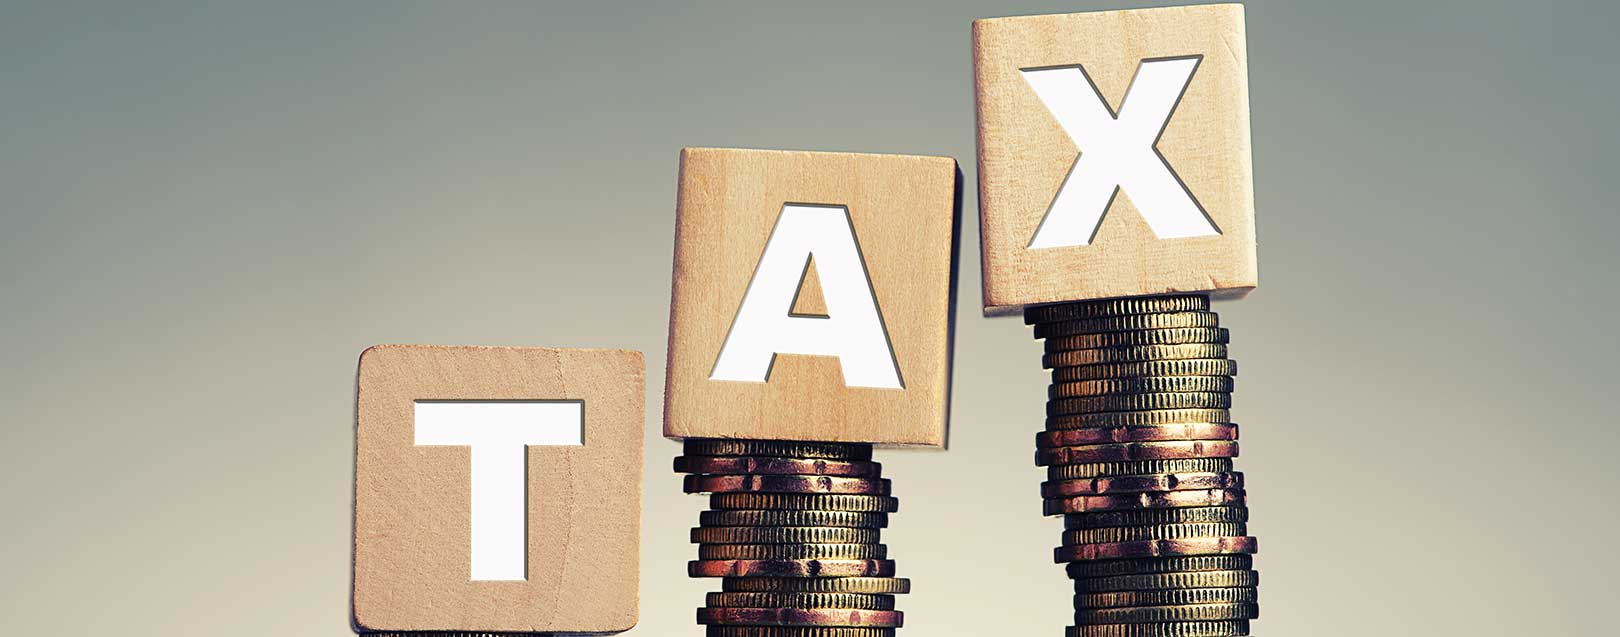 Govt targets to rollout GST by April next year